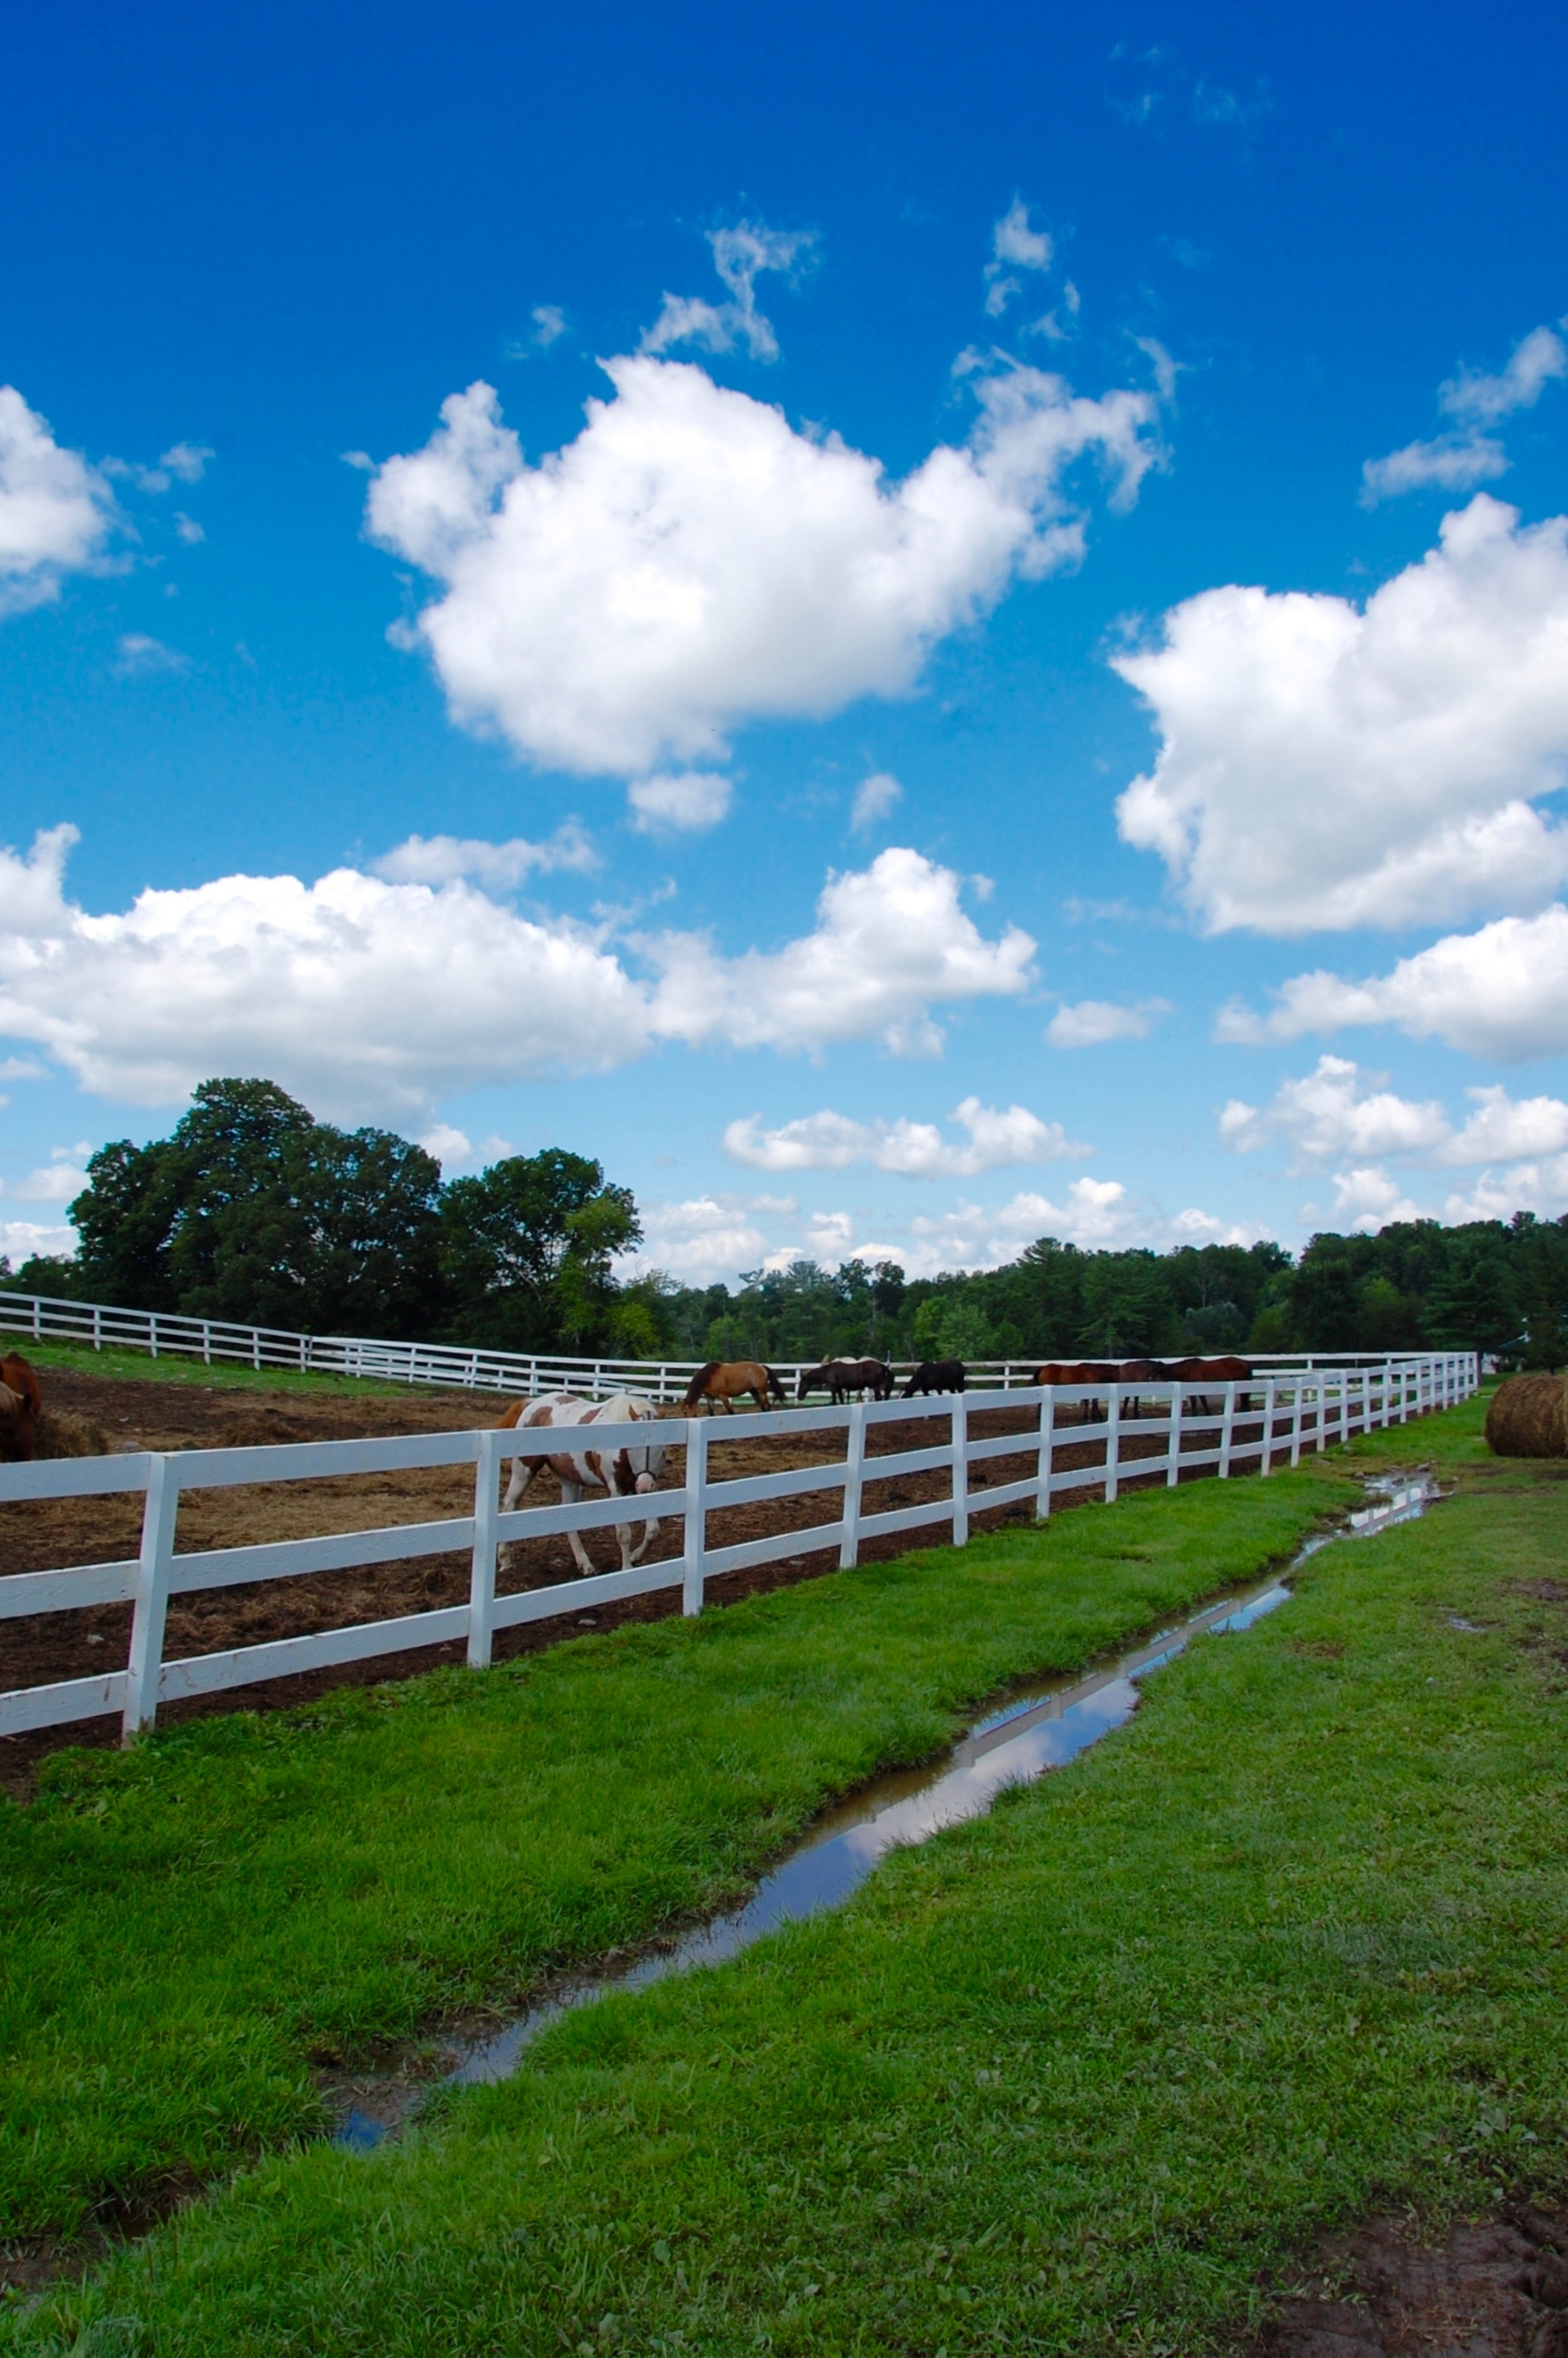 K&K Equestrian : The prettiest place for a pony ride or horseback riding